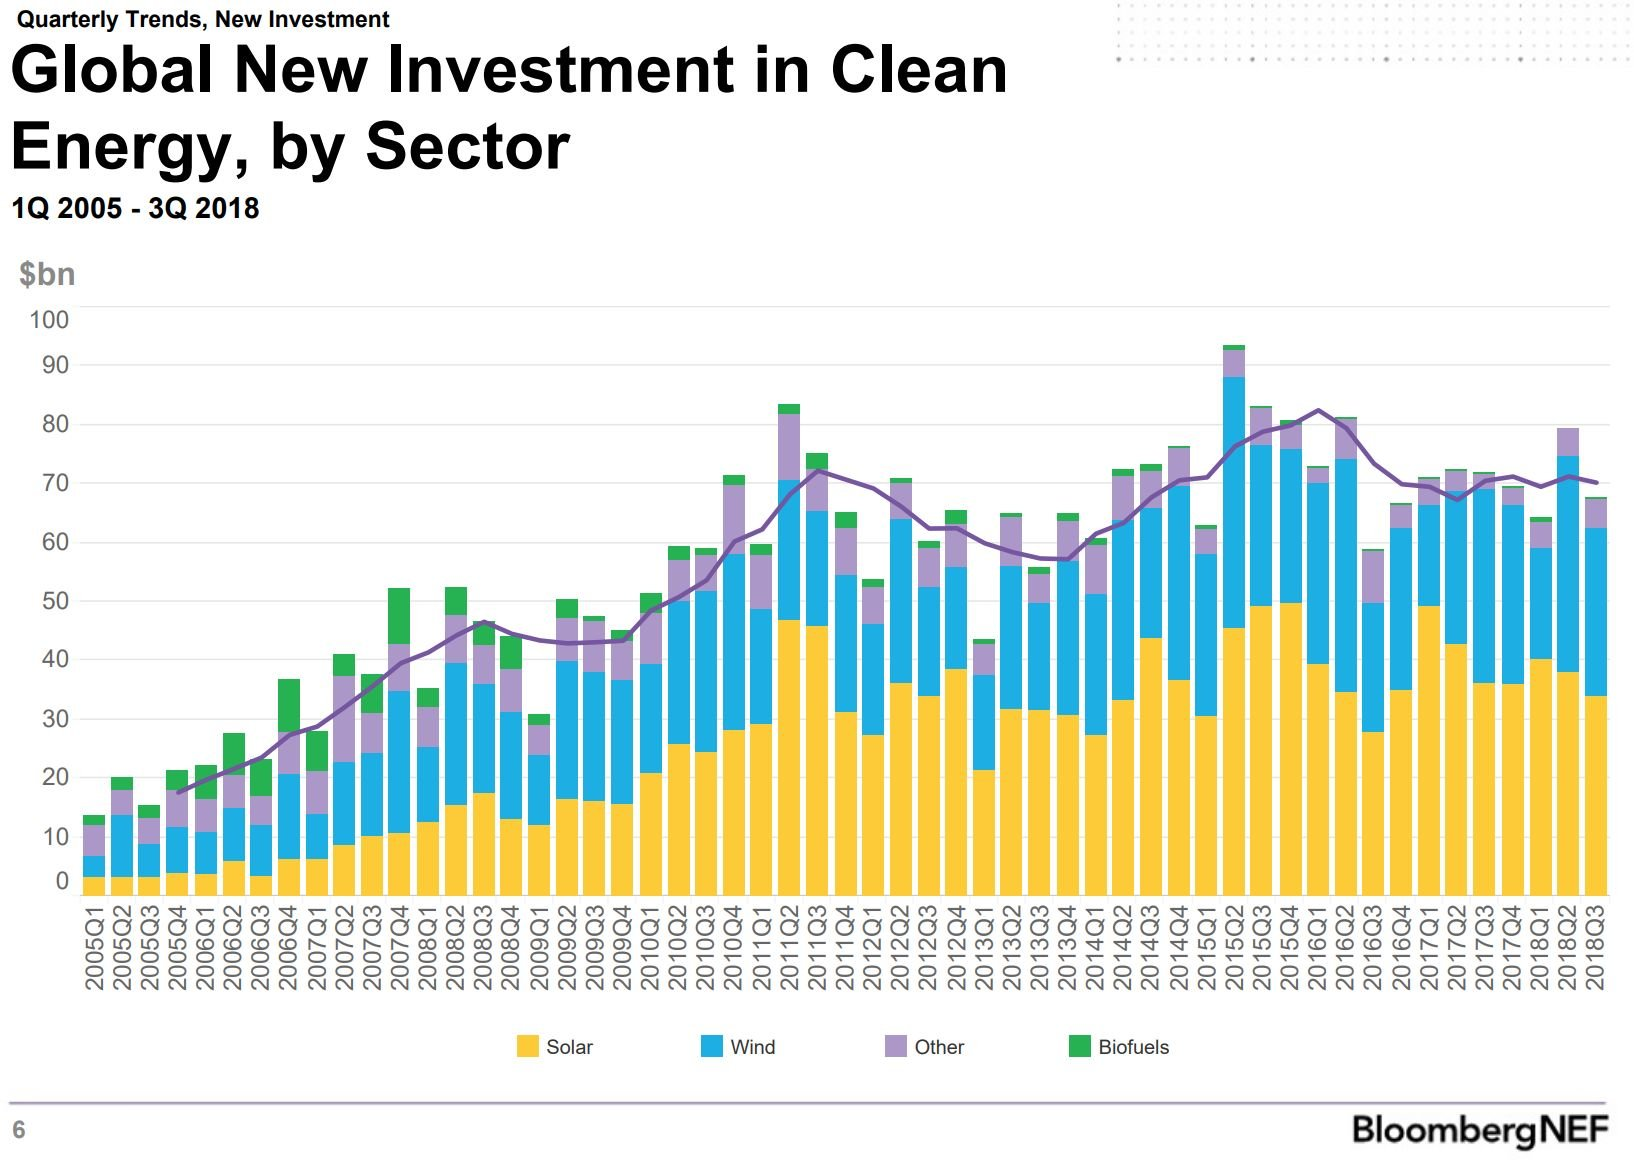 Clean energy investment companies trading triangle patterns